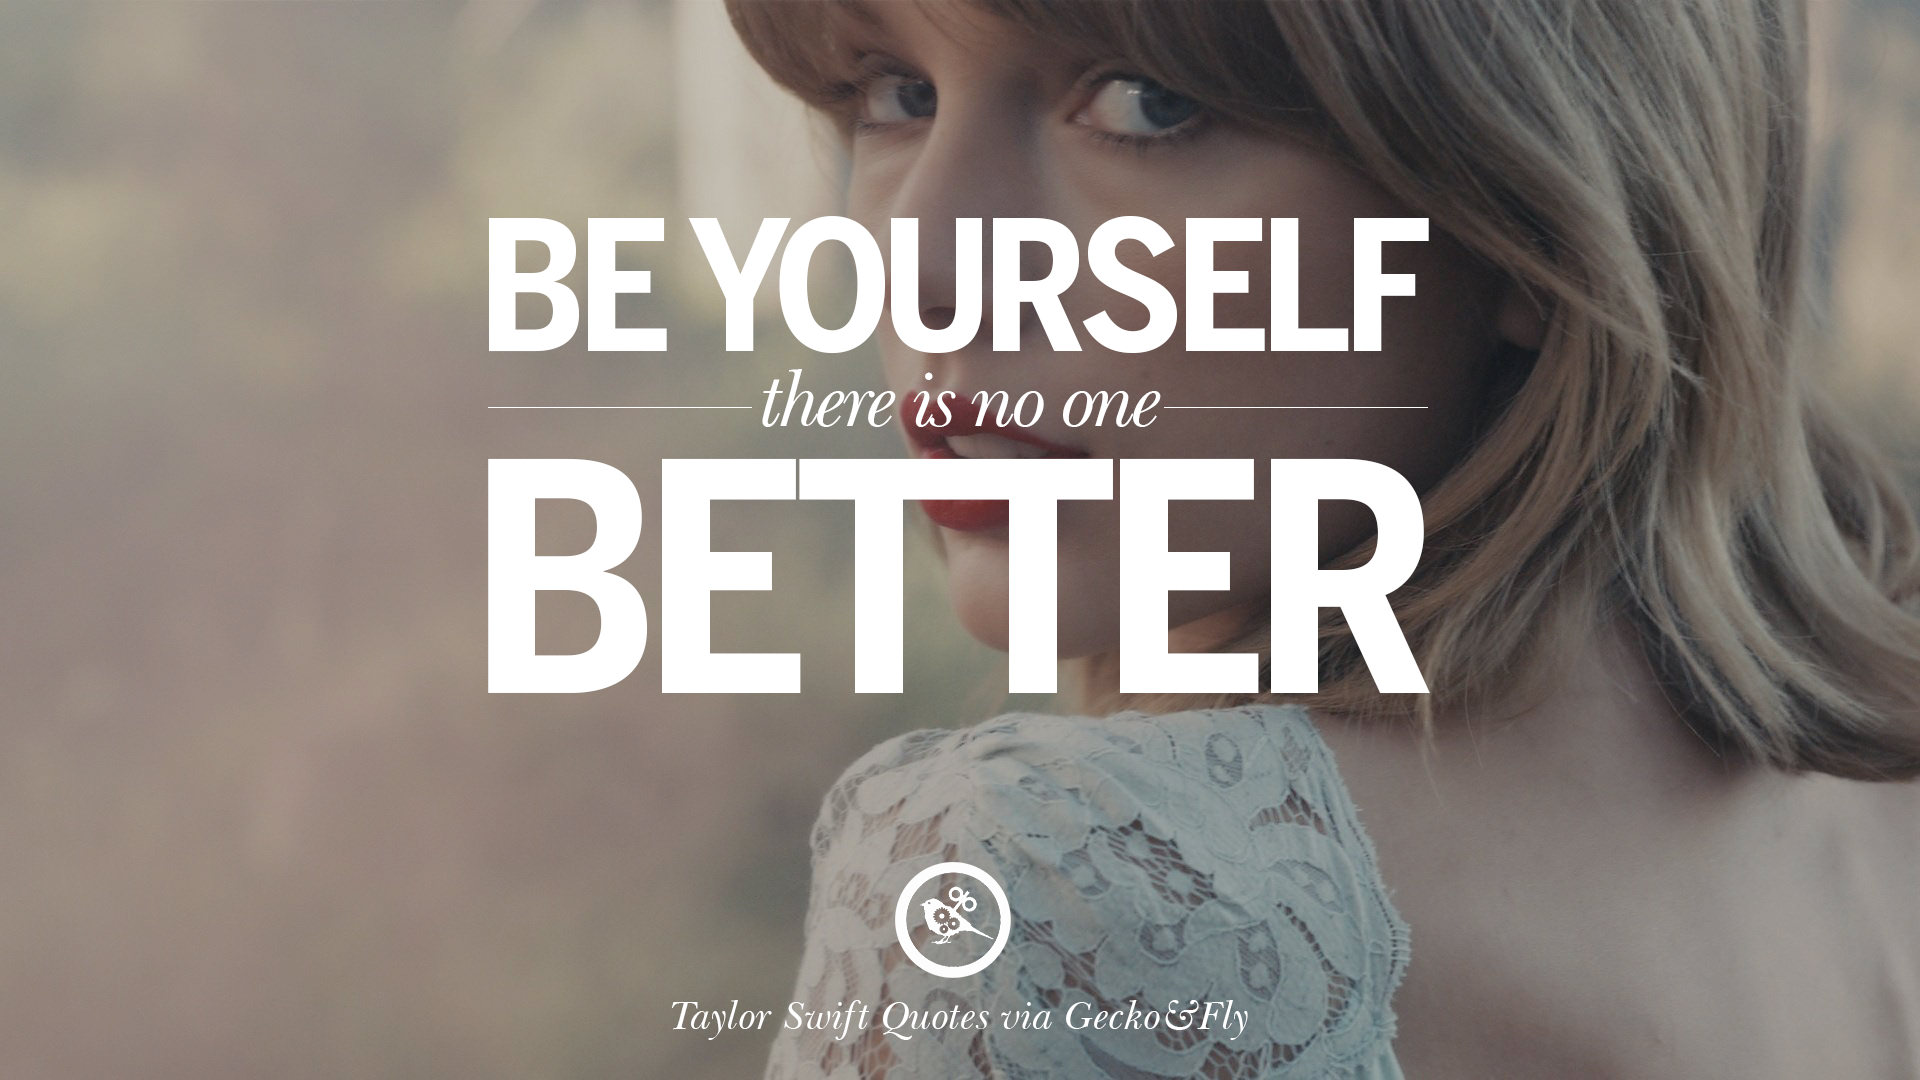 Desktop Wallpaper Pinterest Fall 18 Inspiring Taylor Swift Quotes On Believing In Yourself